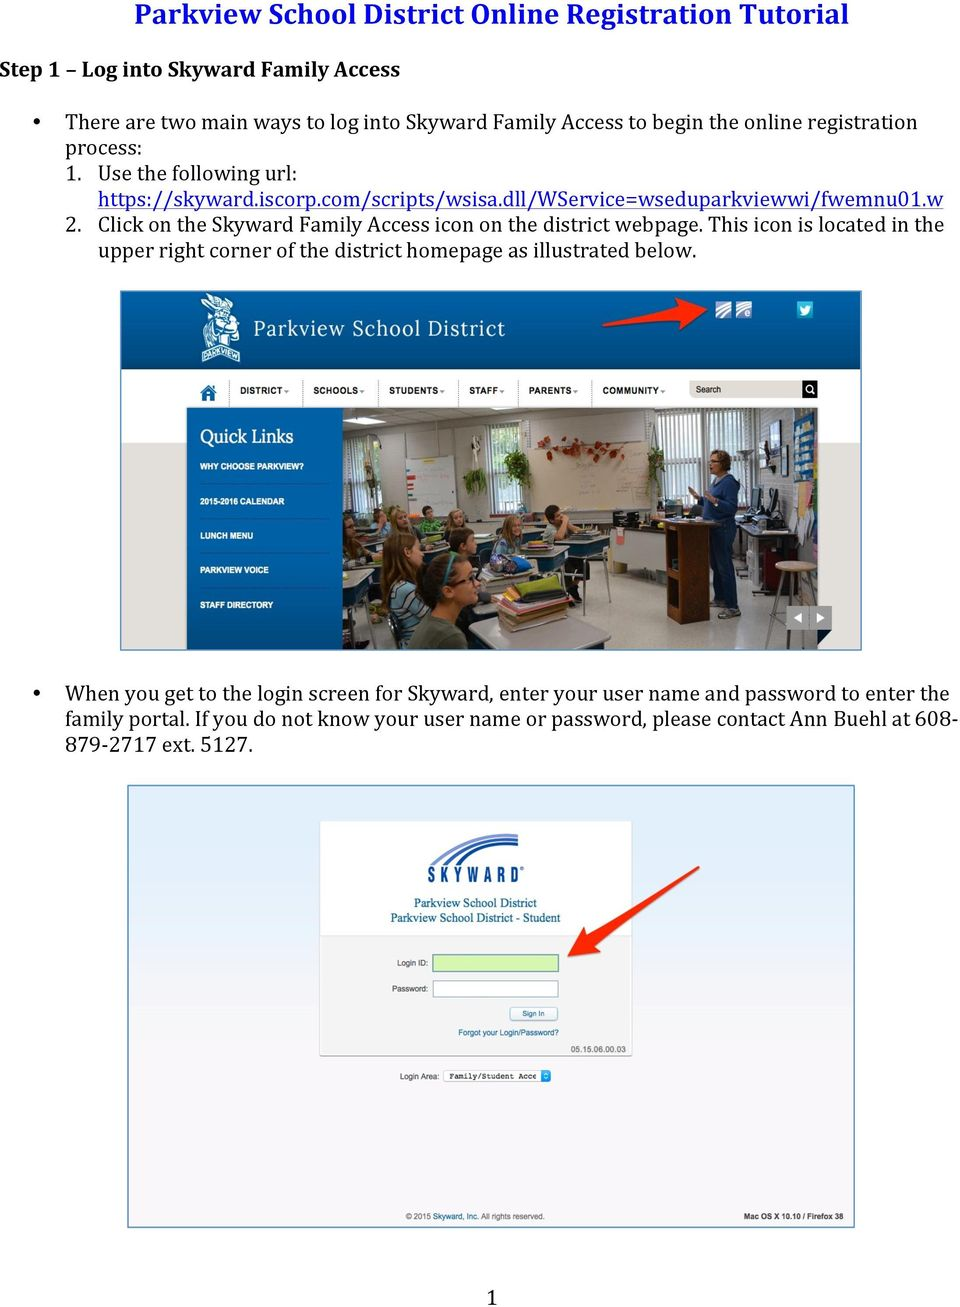 Click on the Skyward Family Access icon on the district webpage. This icon is located in the upper right corner of the district homepage as illustrated below.